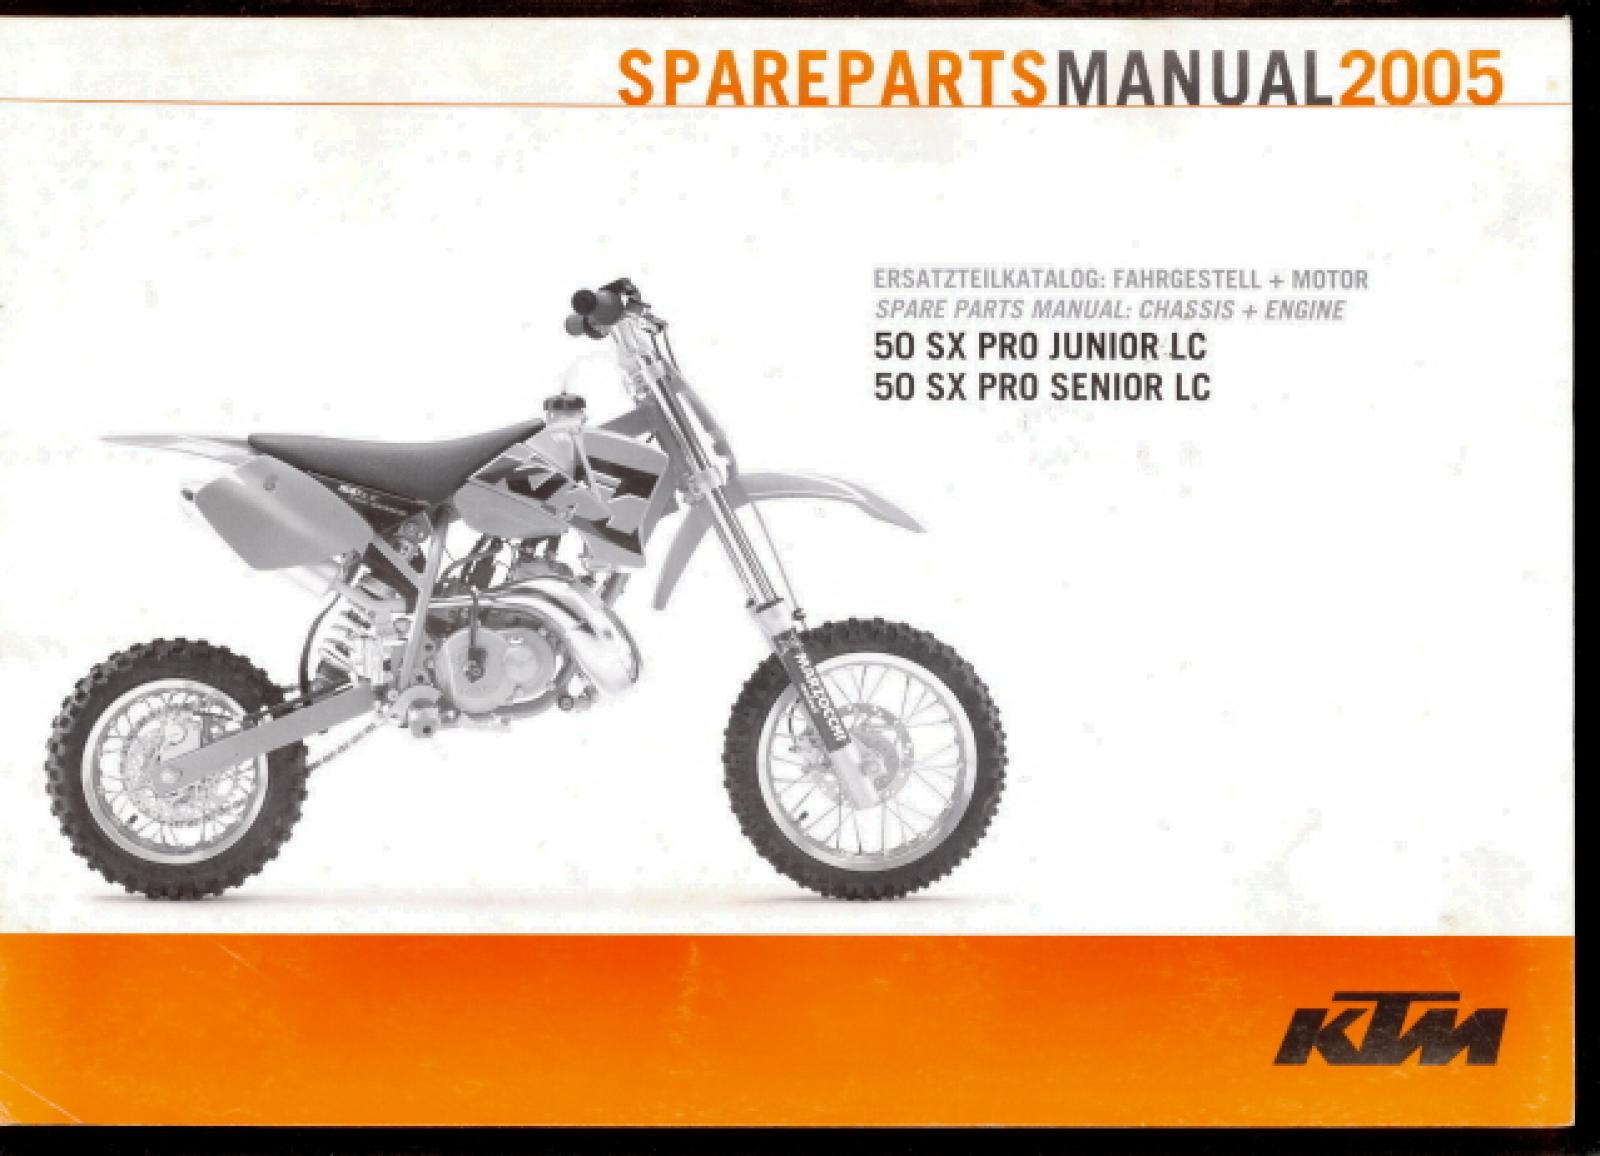 2013 KTM 50 Sx Manual Engine. 2005 KTM 50 Sx Pro Junior Lc Moto Zombdrive Rh 2014 2013 125. KTM. KTM 50 Dirt Bike Diagram At Scoala.co